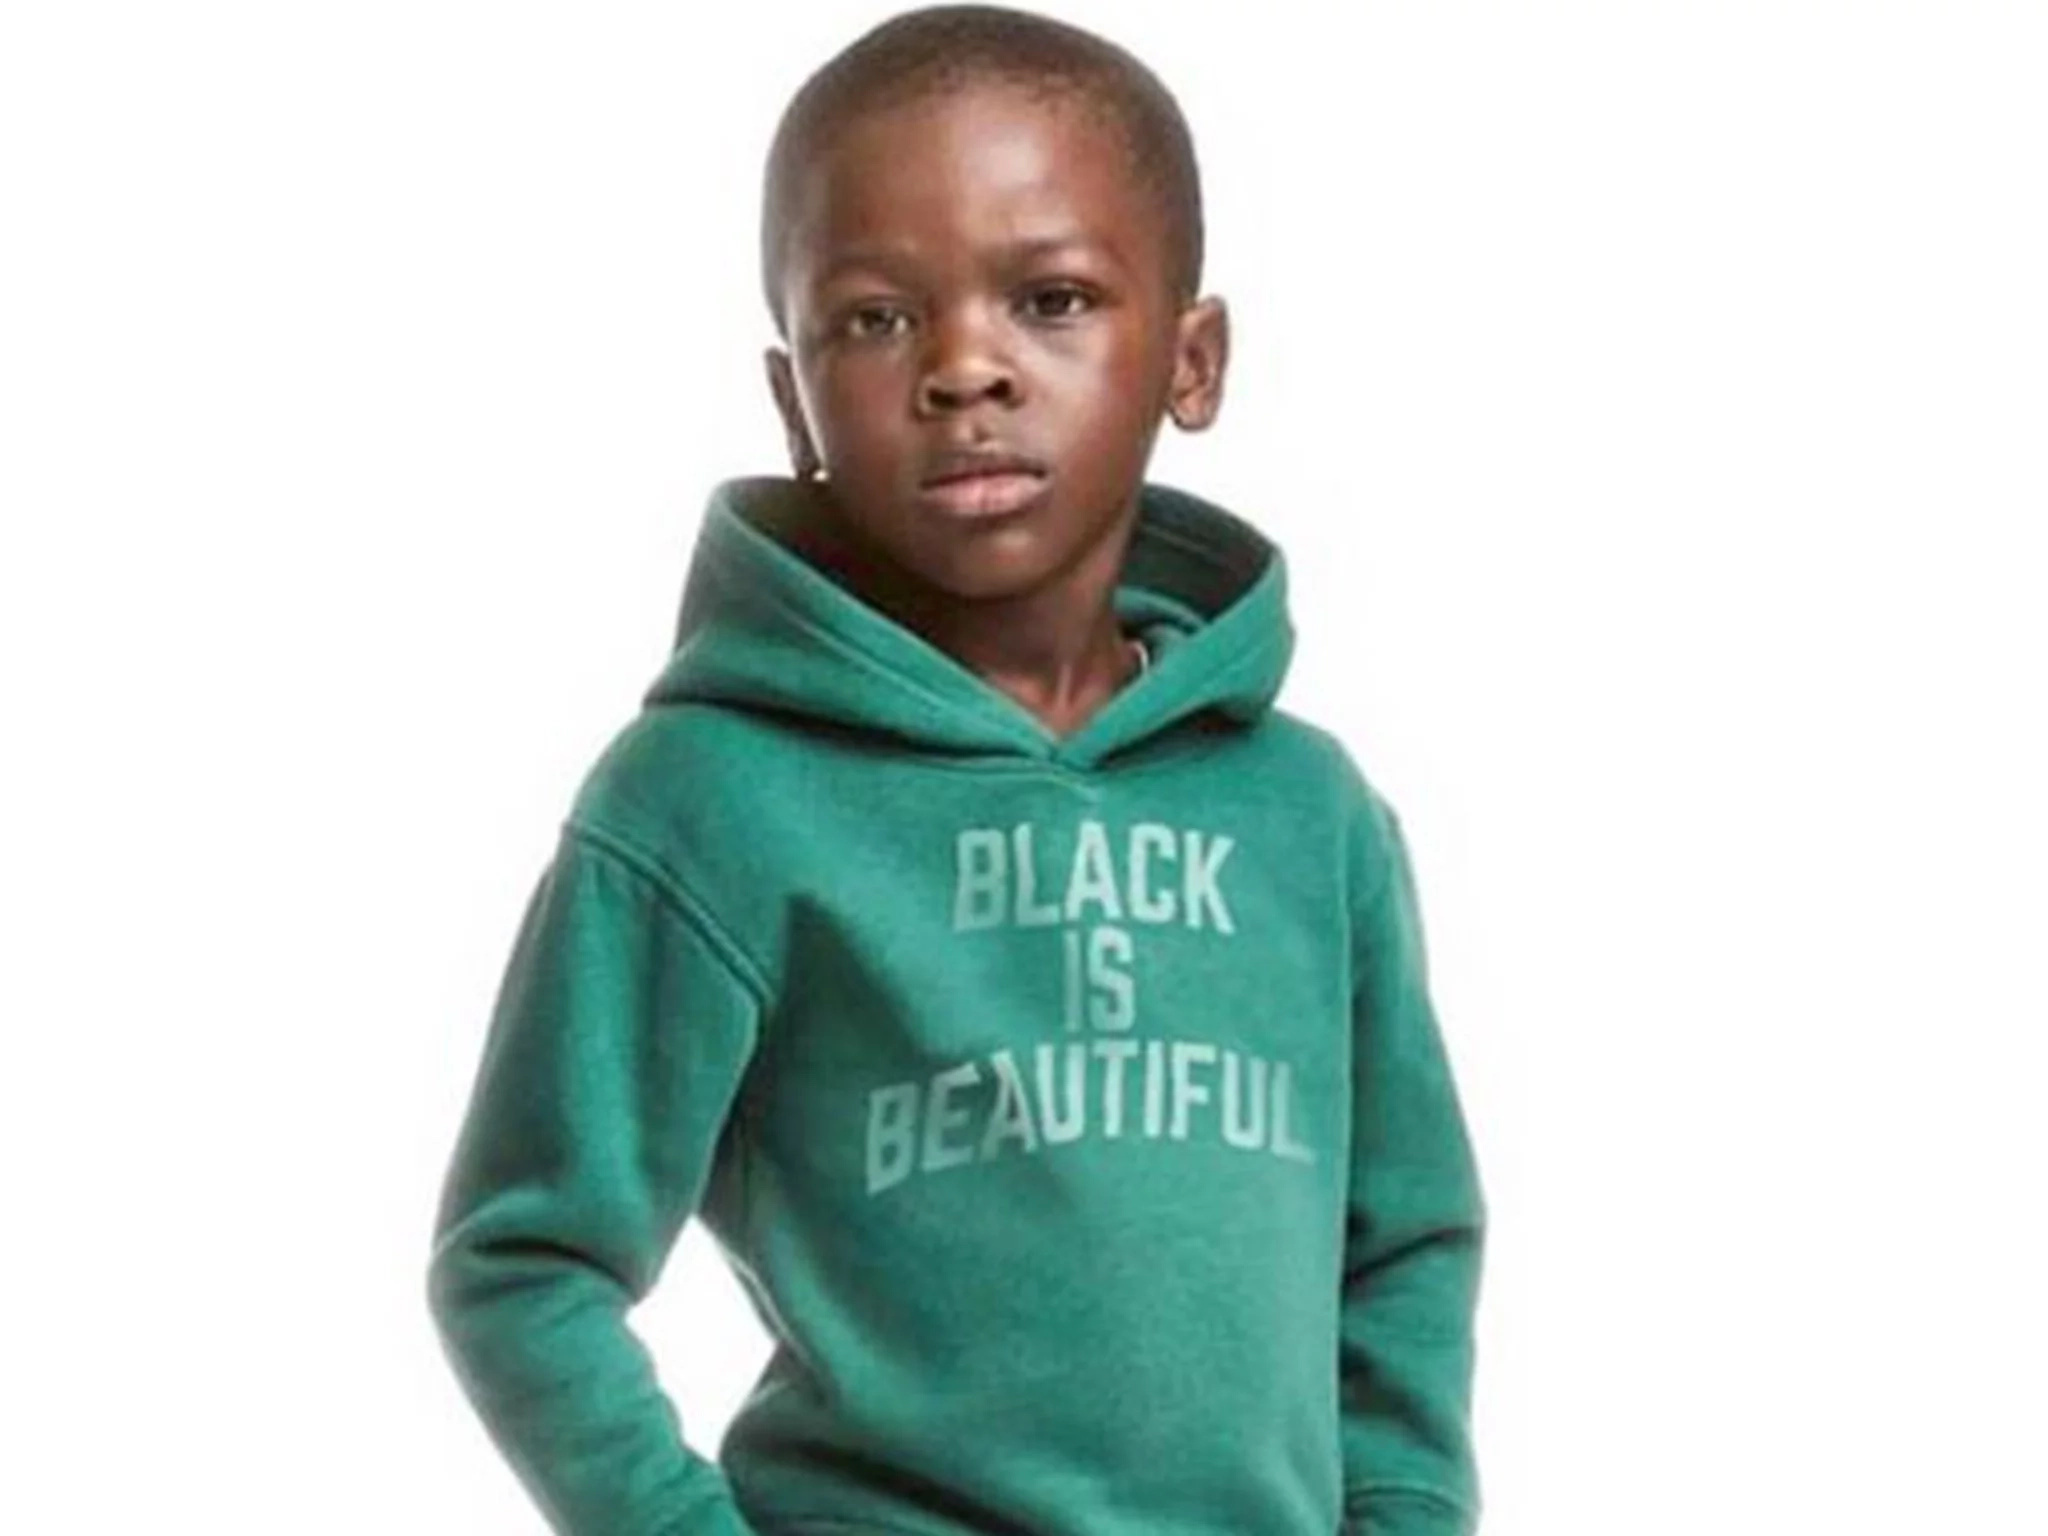 H&M Model's Mom Defends Racist Ad: